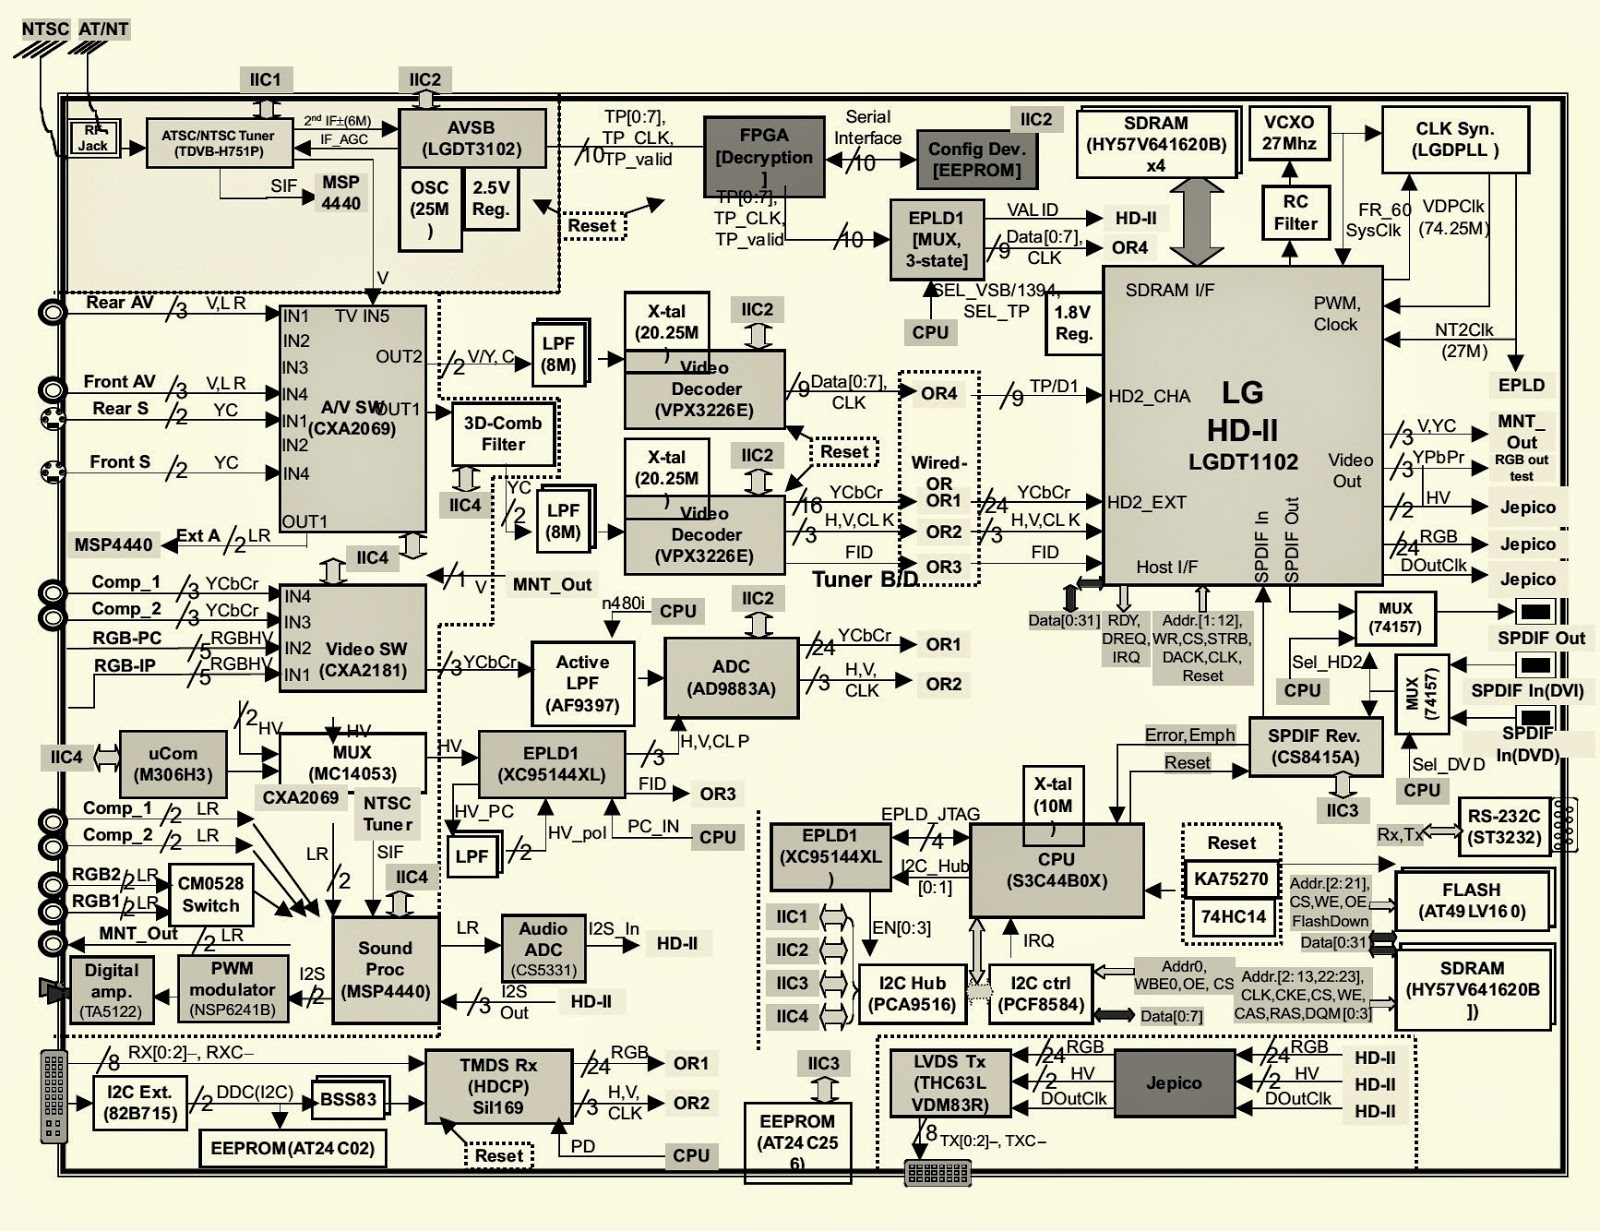 haier tv circuit board diagrams  schematics  pdf service Panasonic TV CRT Hitachi CRT TV 20